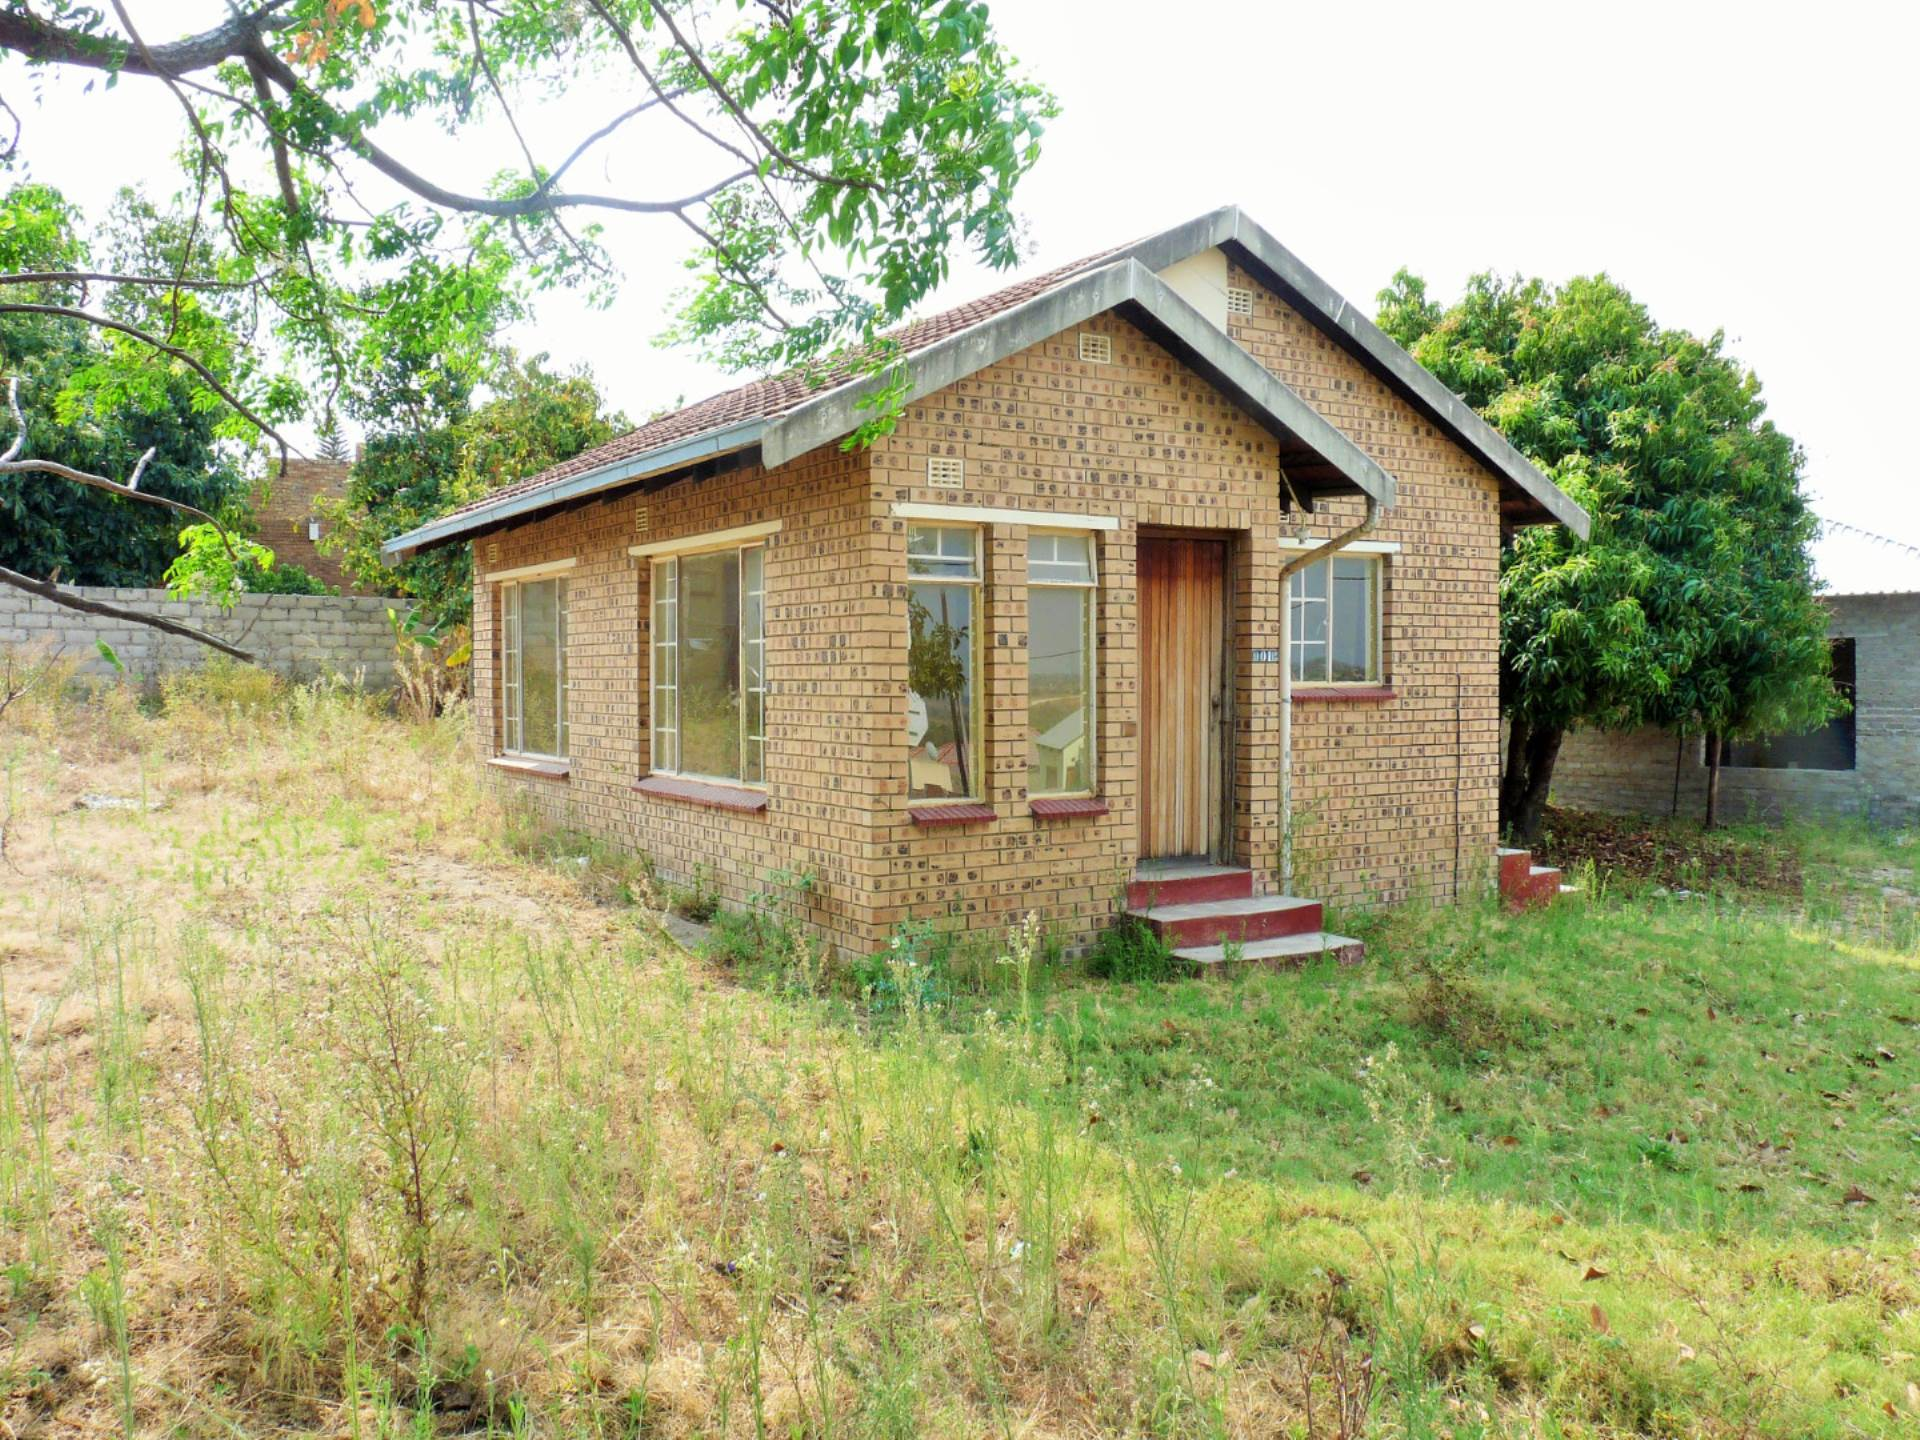 2 BedroomHouse For Sale In Thulamahashe